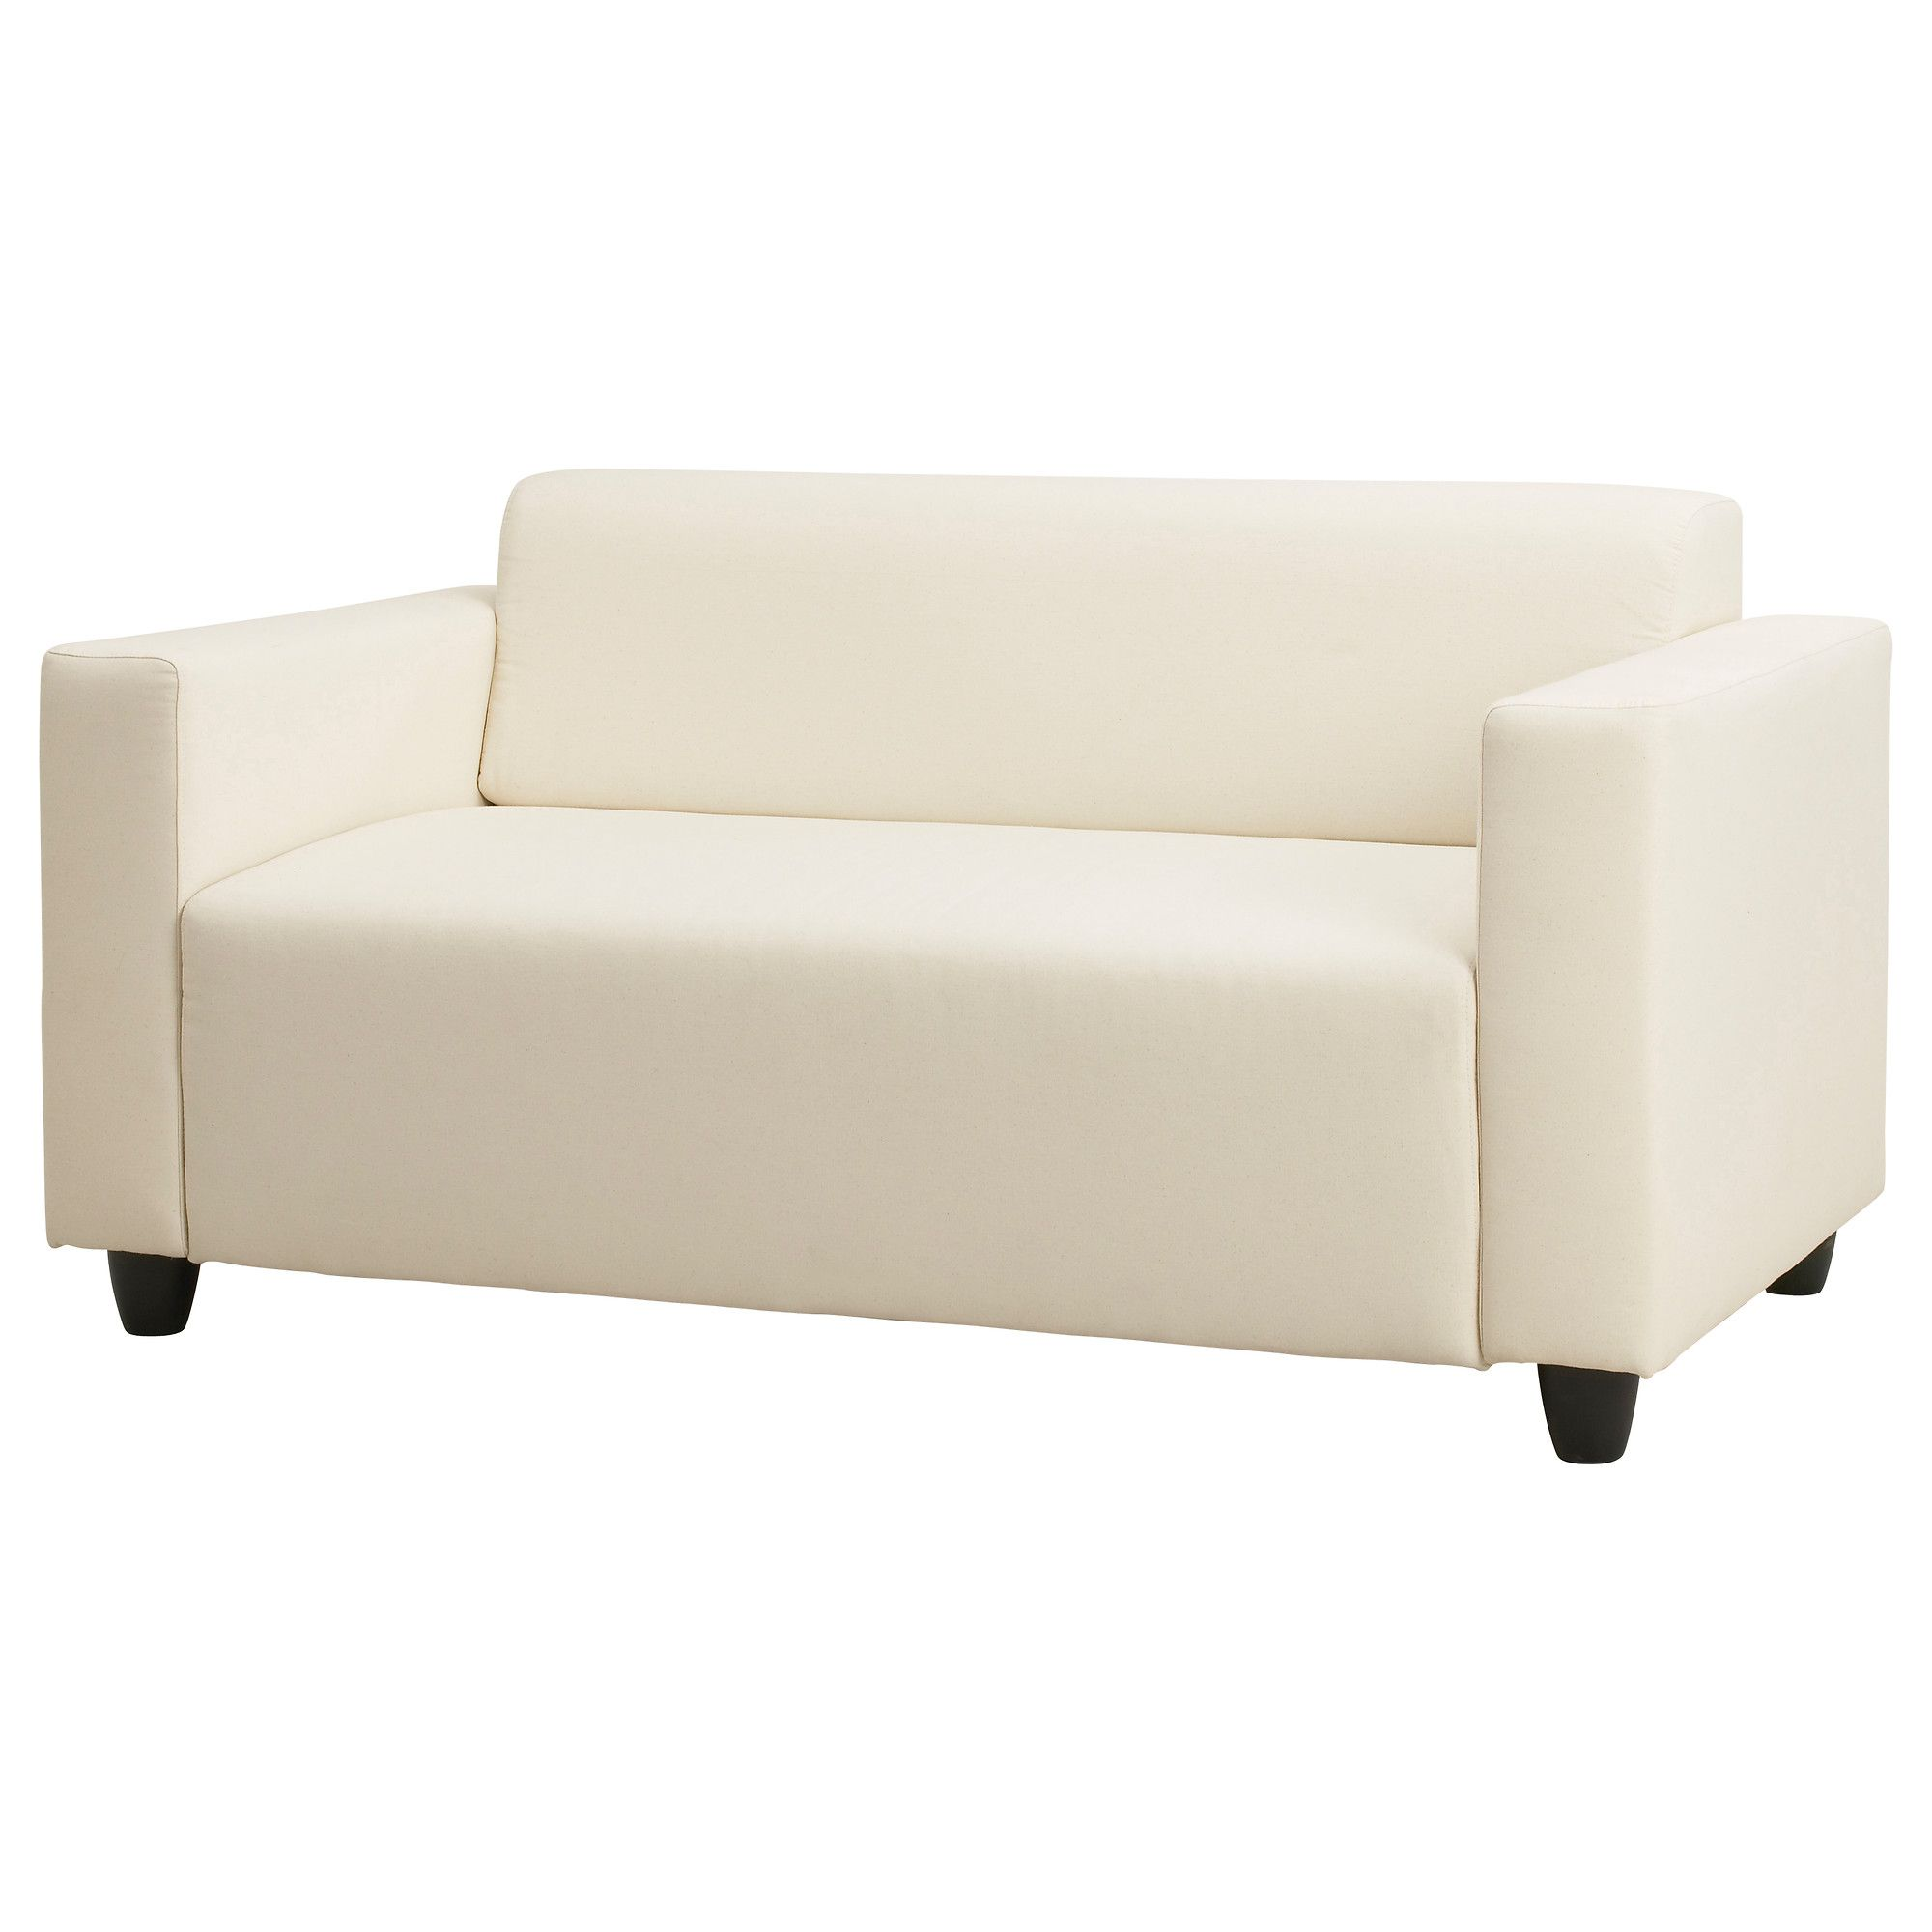 average height of a sofa seat foot mage chair klobo two ikea 179 lussebo natural only